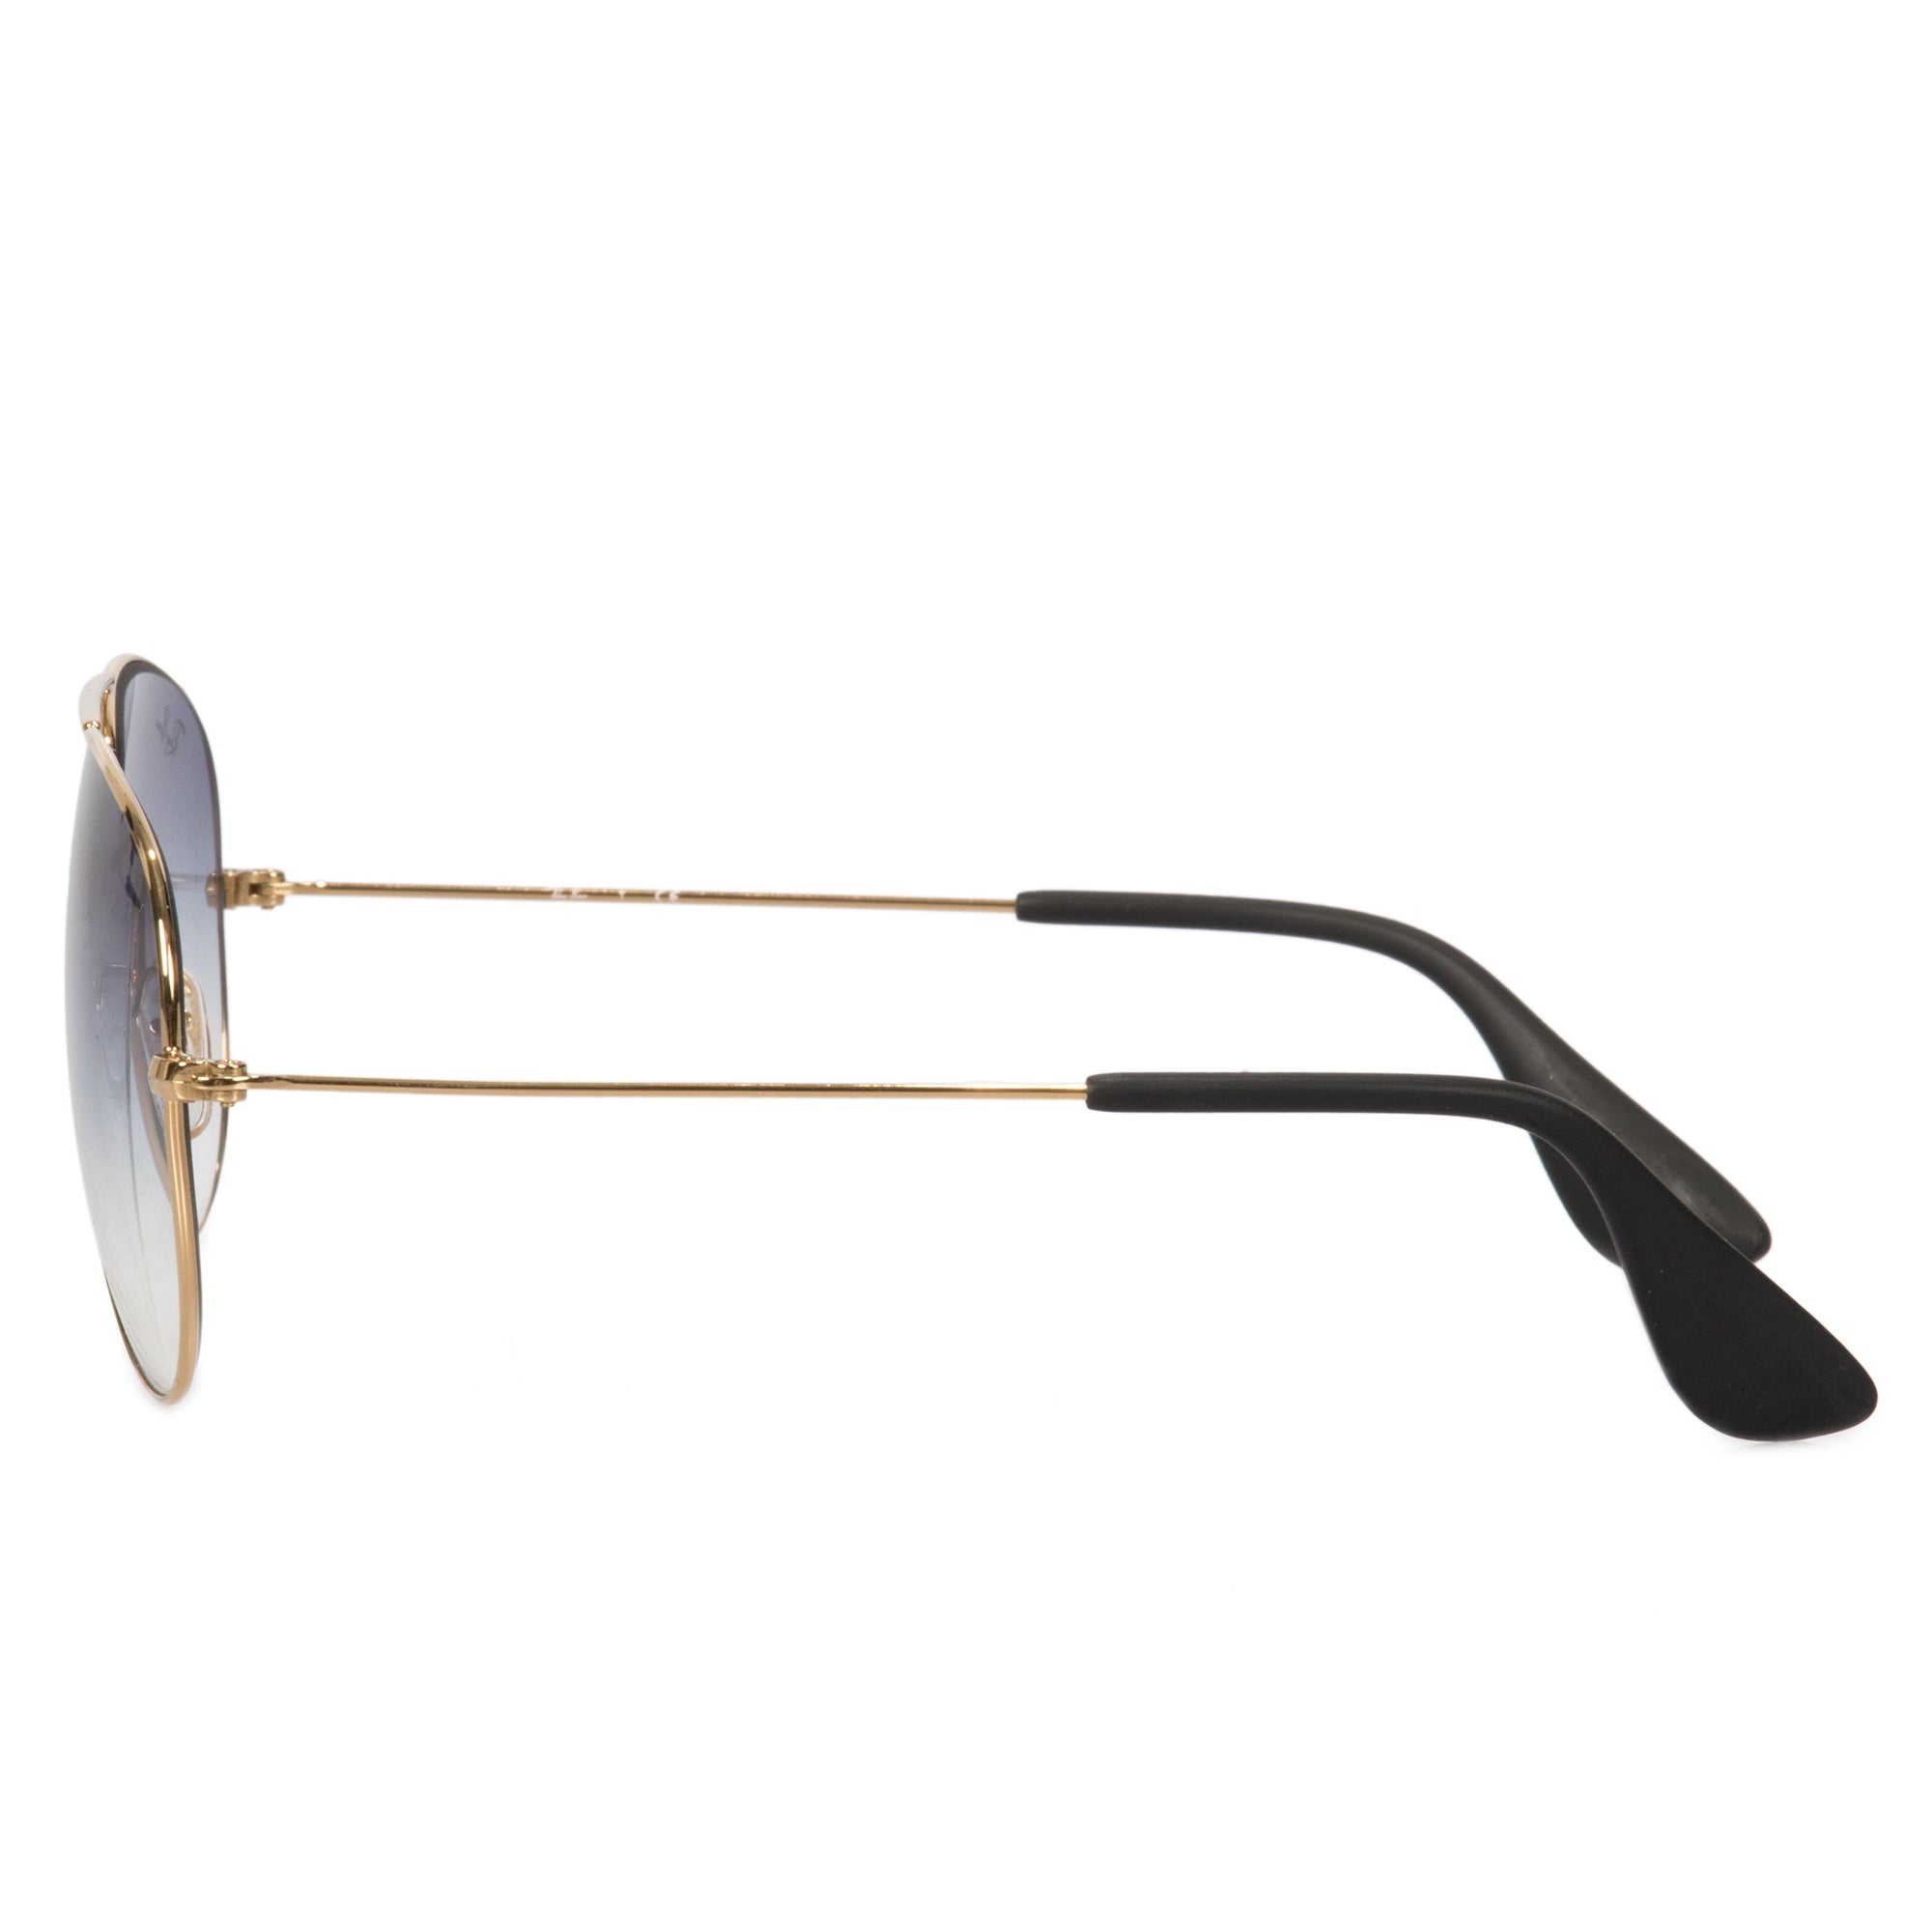 ee4b0b166e8 Shop Ray-Ban Aviator Sunglasses RB3558 001 19 58 - Free Shipping Today -  Overstock - 23138801